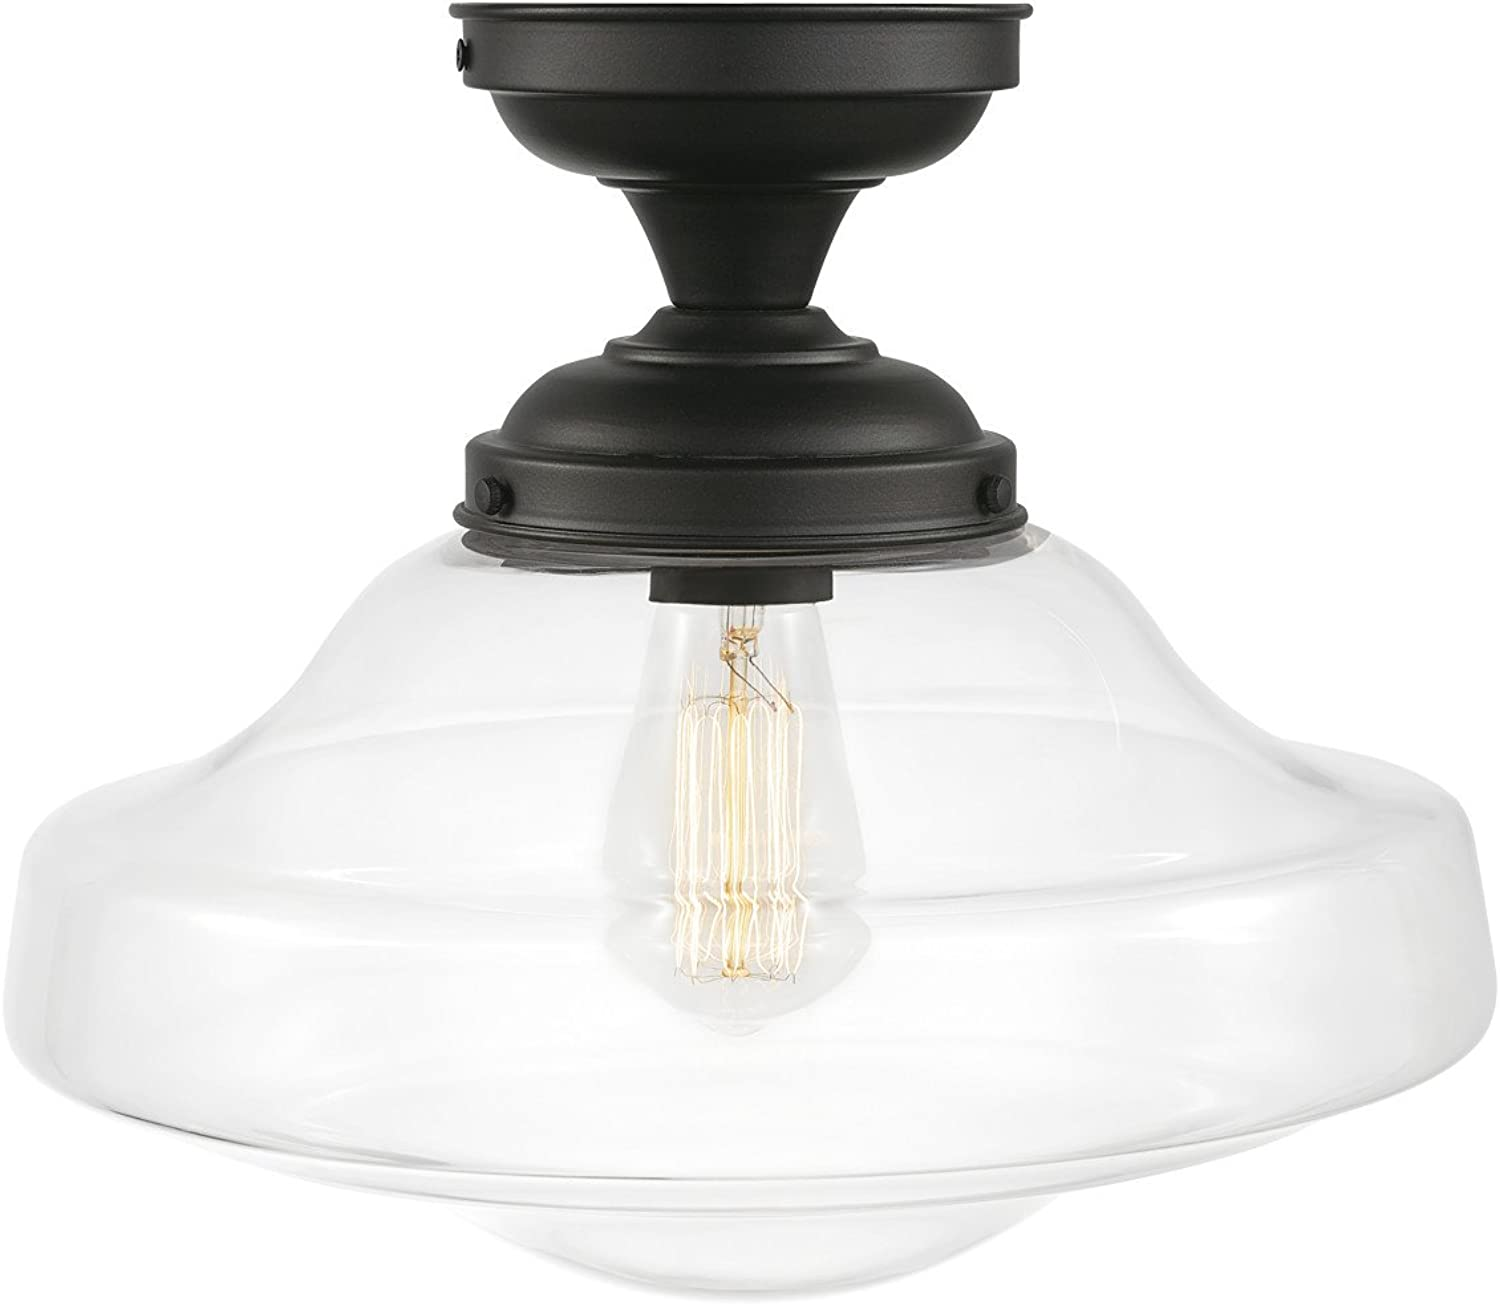 Globe Electric 65849 Lucerne 1-Light Semi-Flush Mount Dark Bronze with Clear Shade